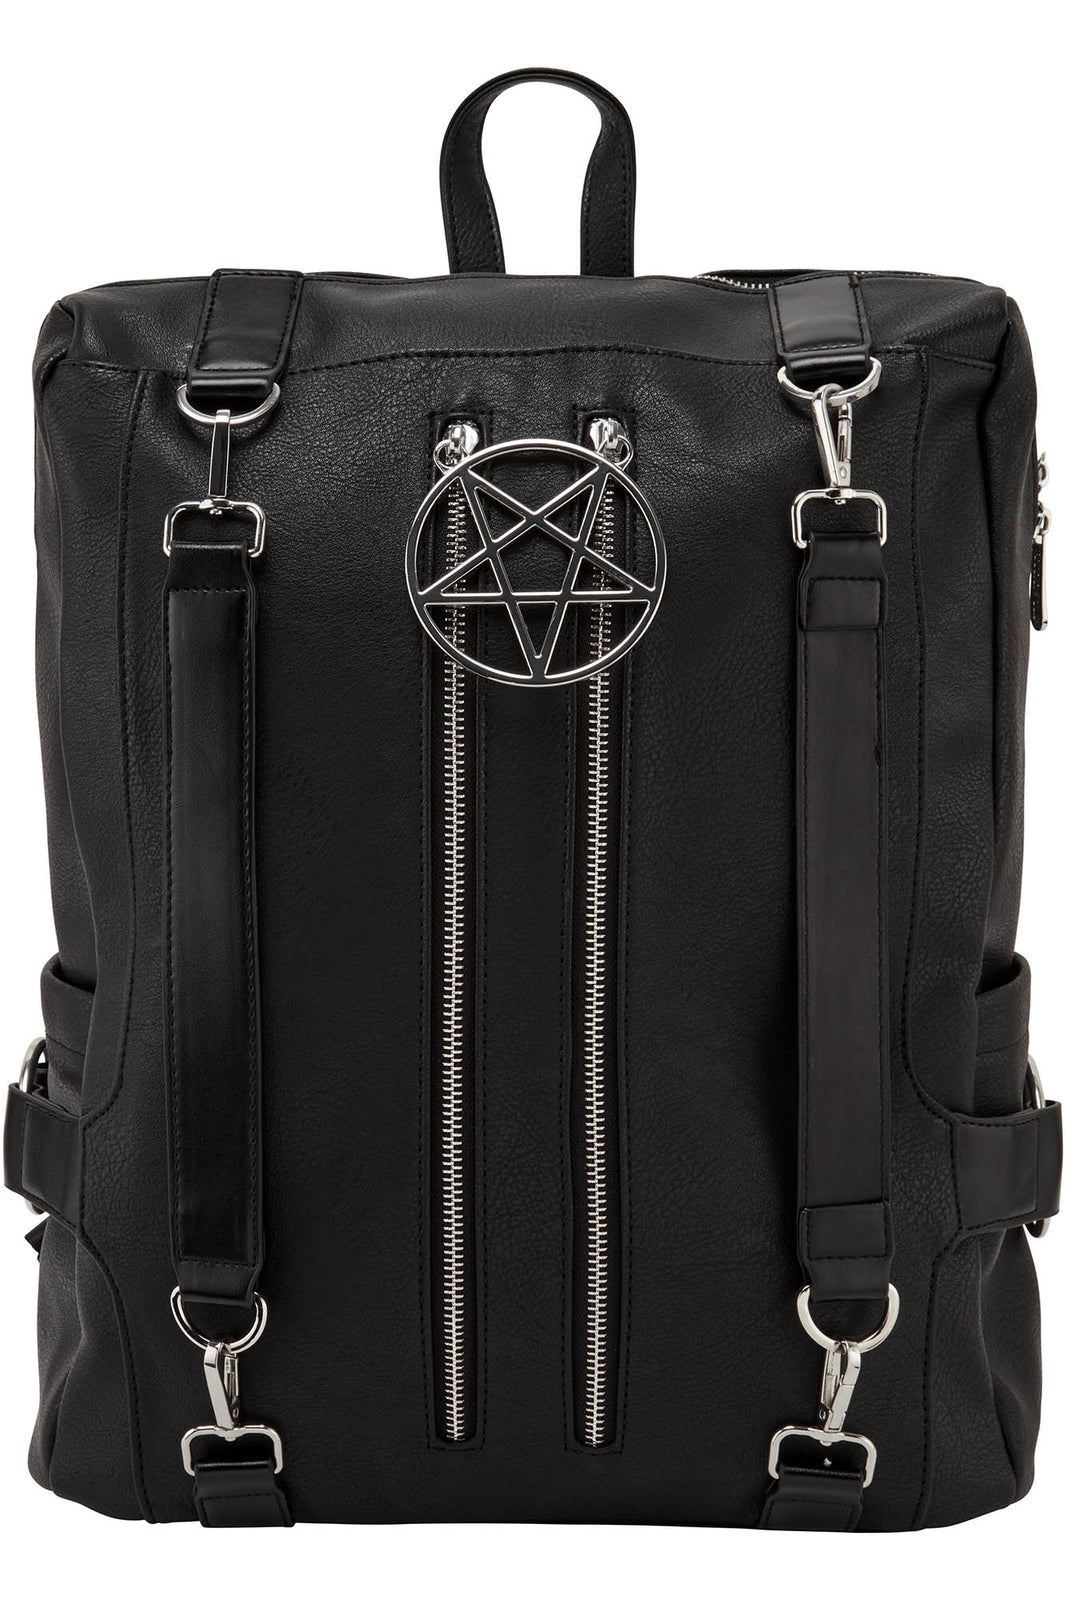 Hell Awaits Backpack